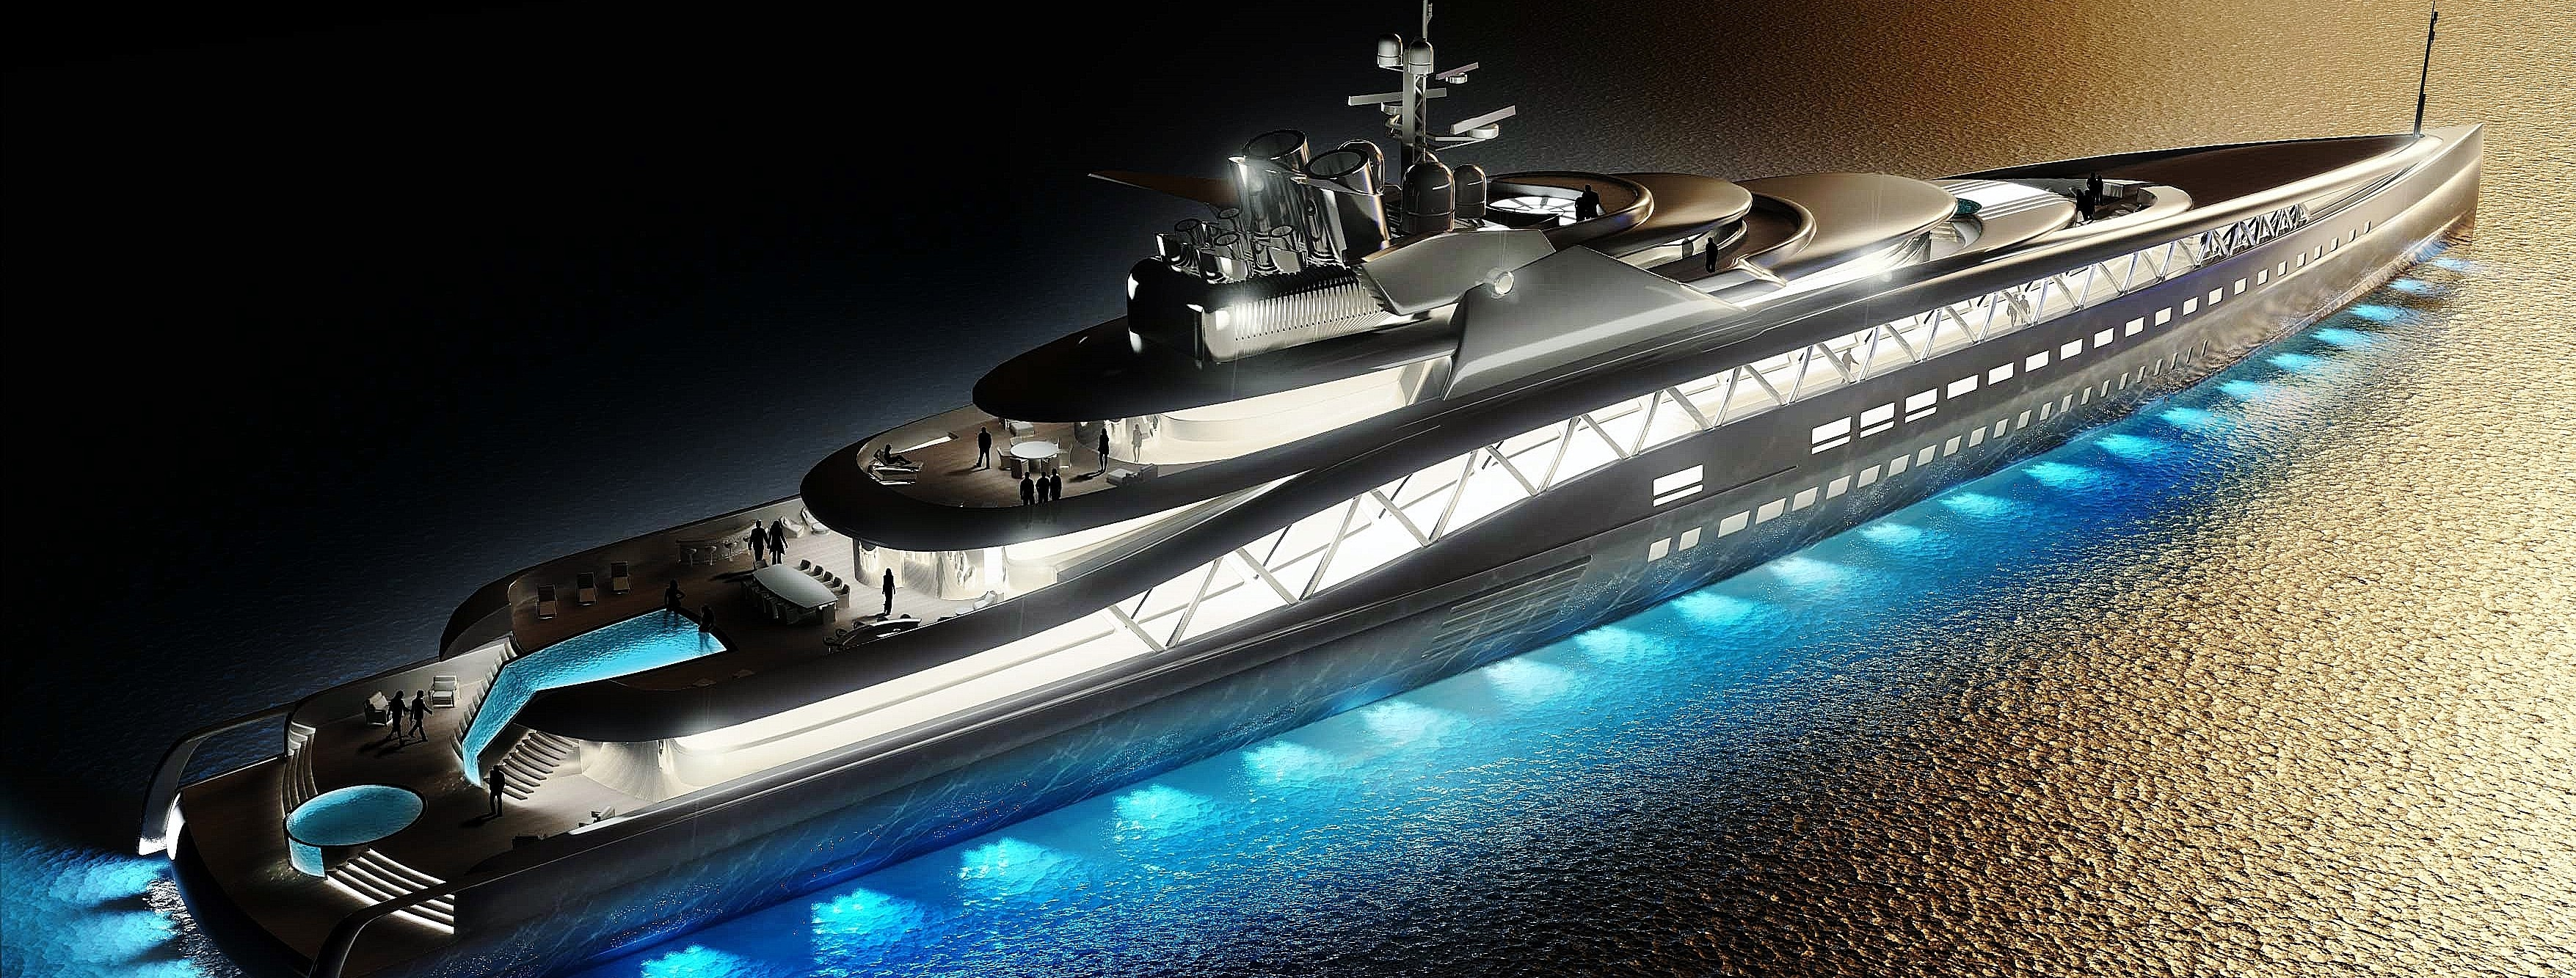 Superyachten concept  Fortissimo-superyacht-concept-by-night (2) - Yacht Experts